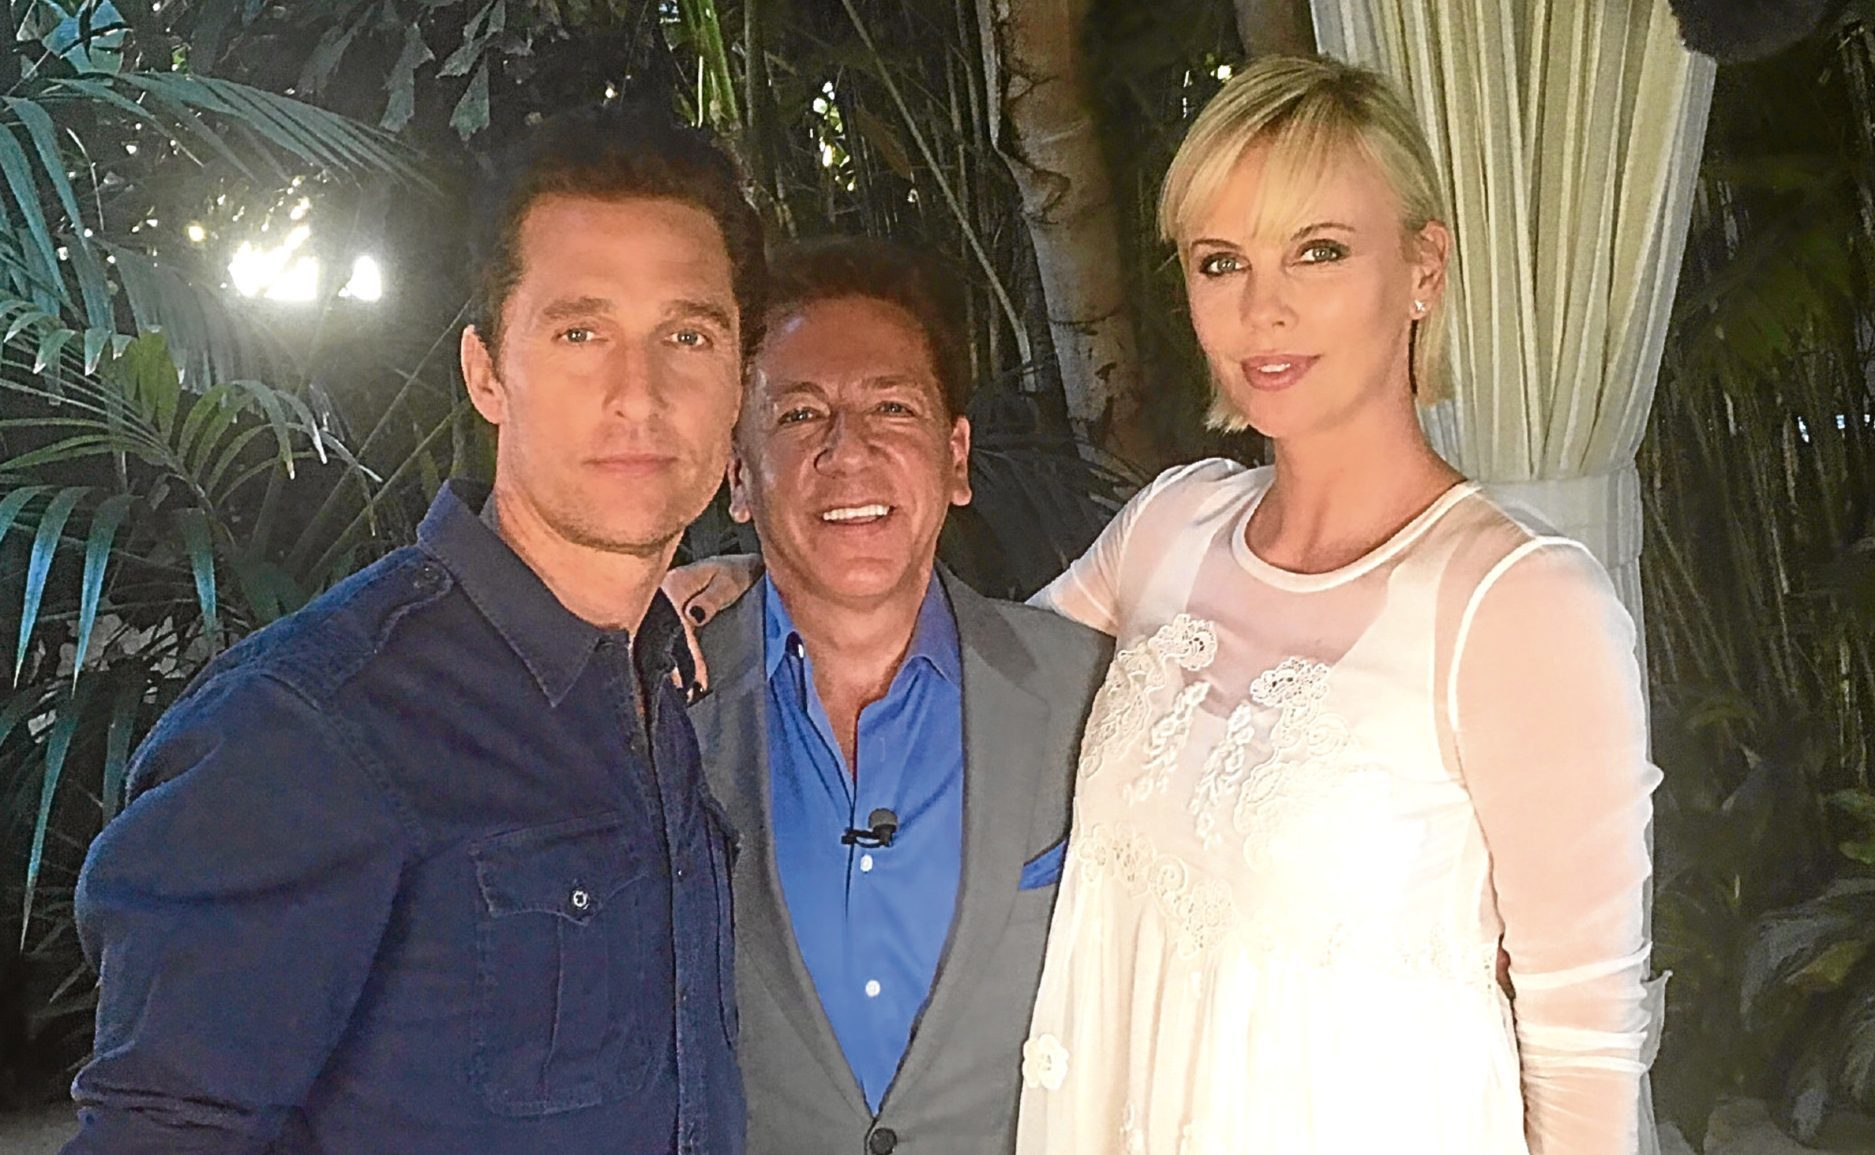 Ross King with Charlize Theron and Matthew McConaughey